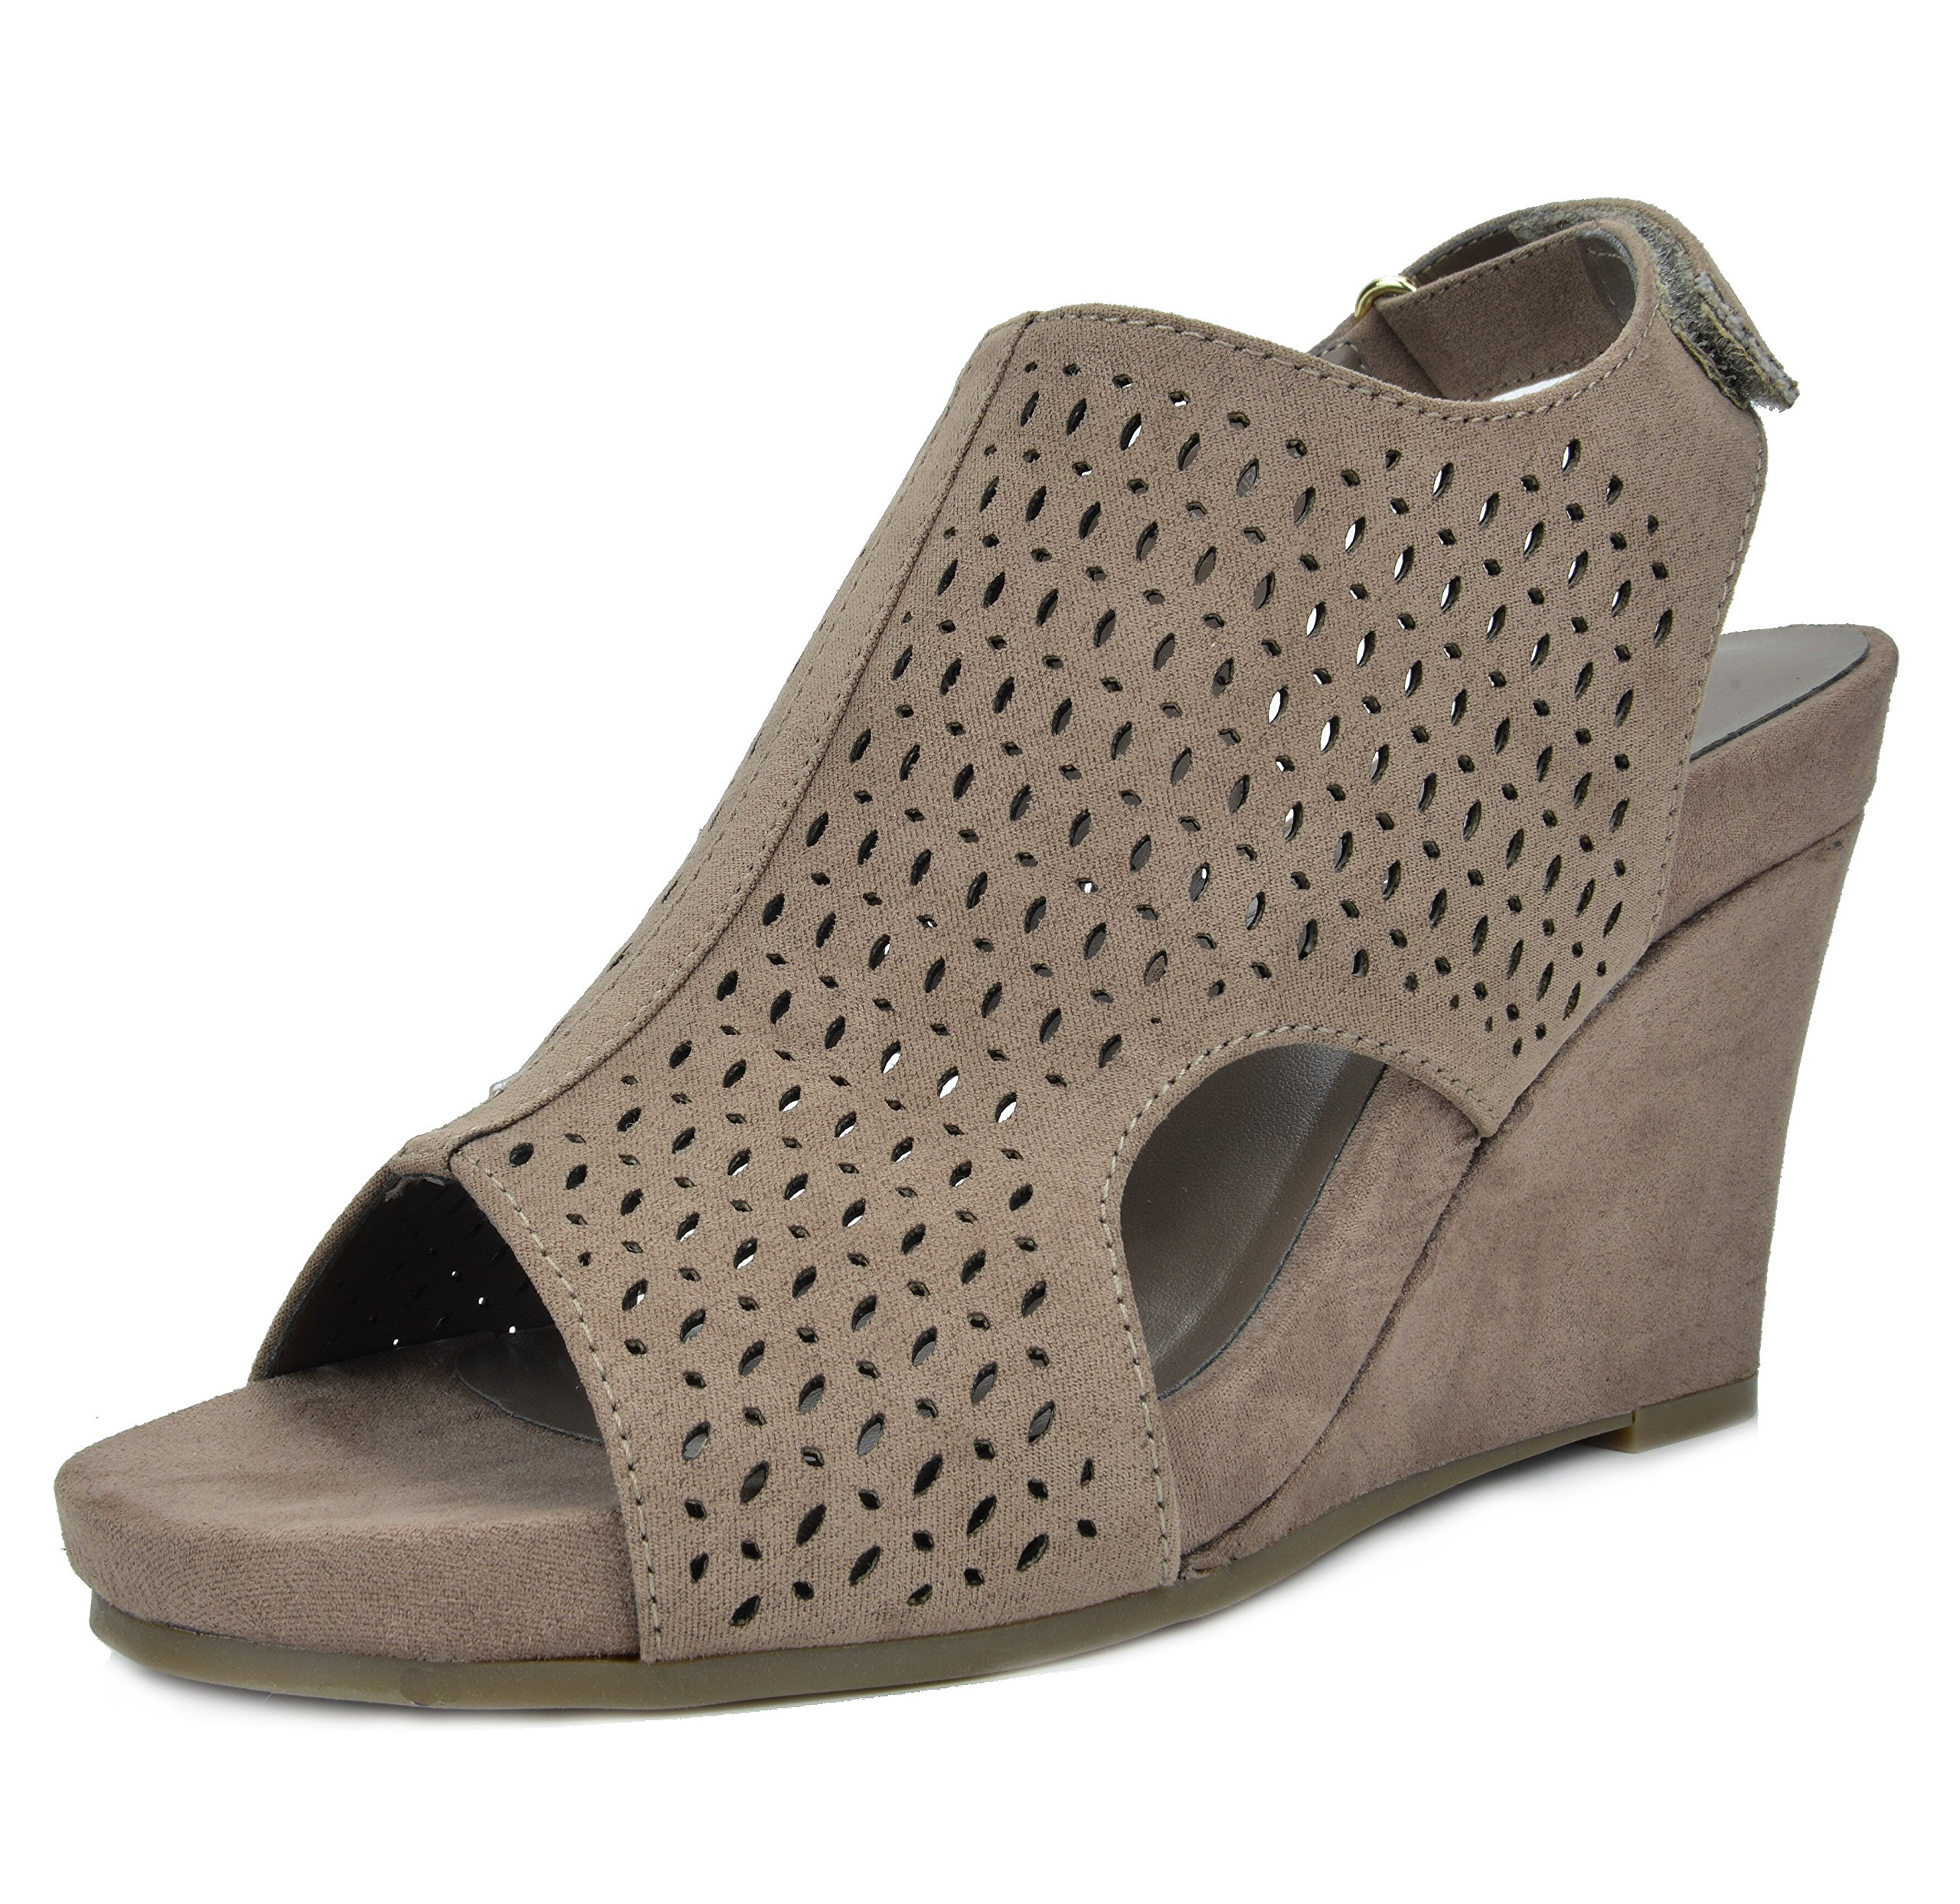 TOETOS Women's Solsoft-6 Taupe Mid Heel Platform Wedges Sandals - 9.5 M US by TOETOS (Image #1)